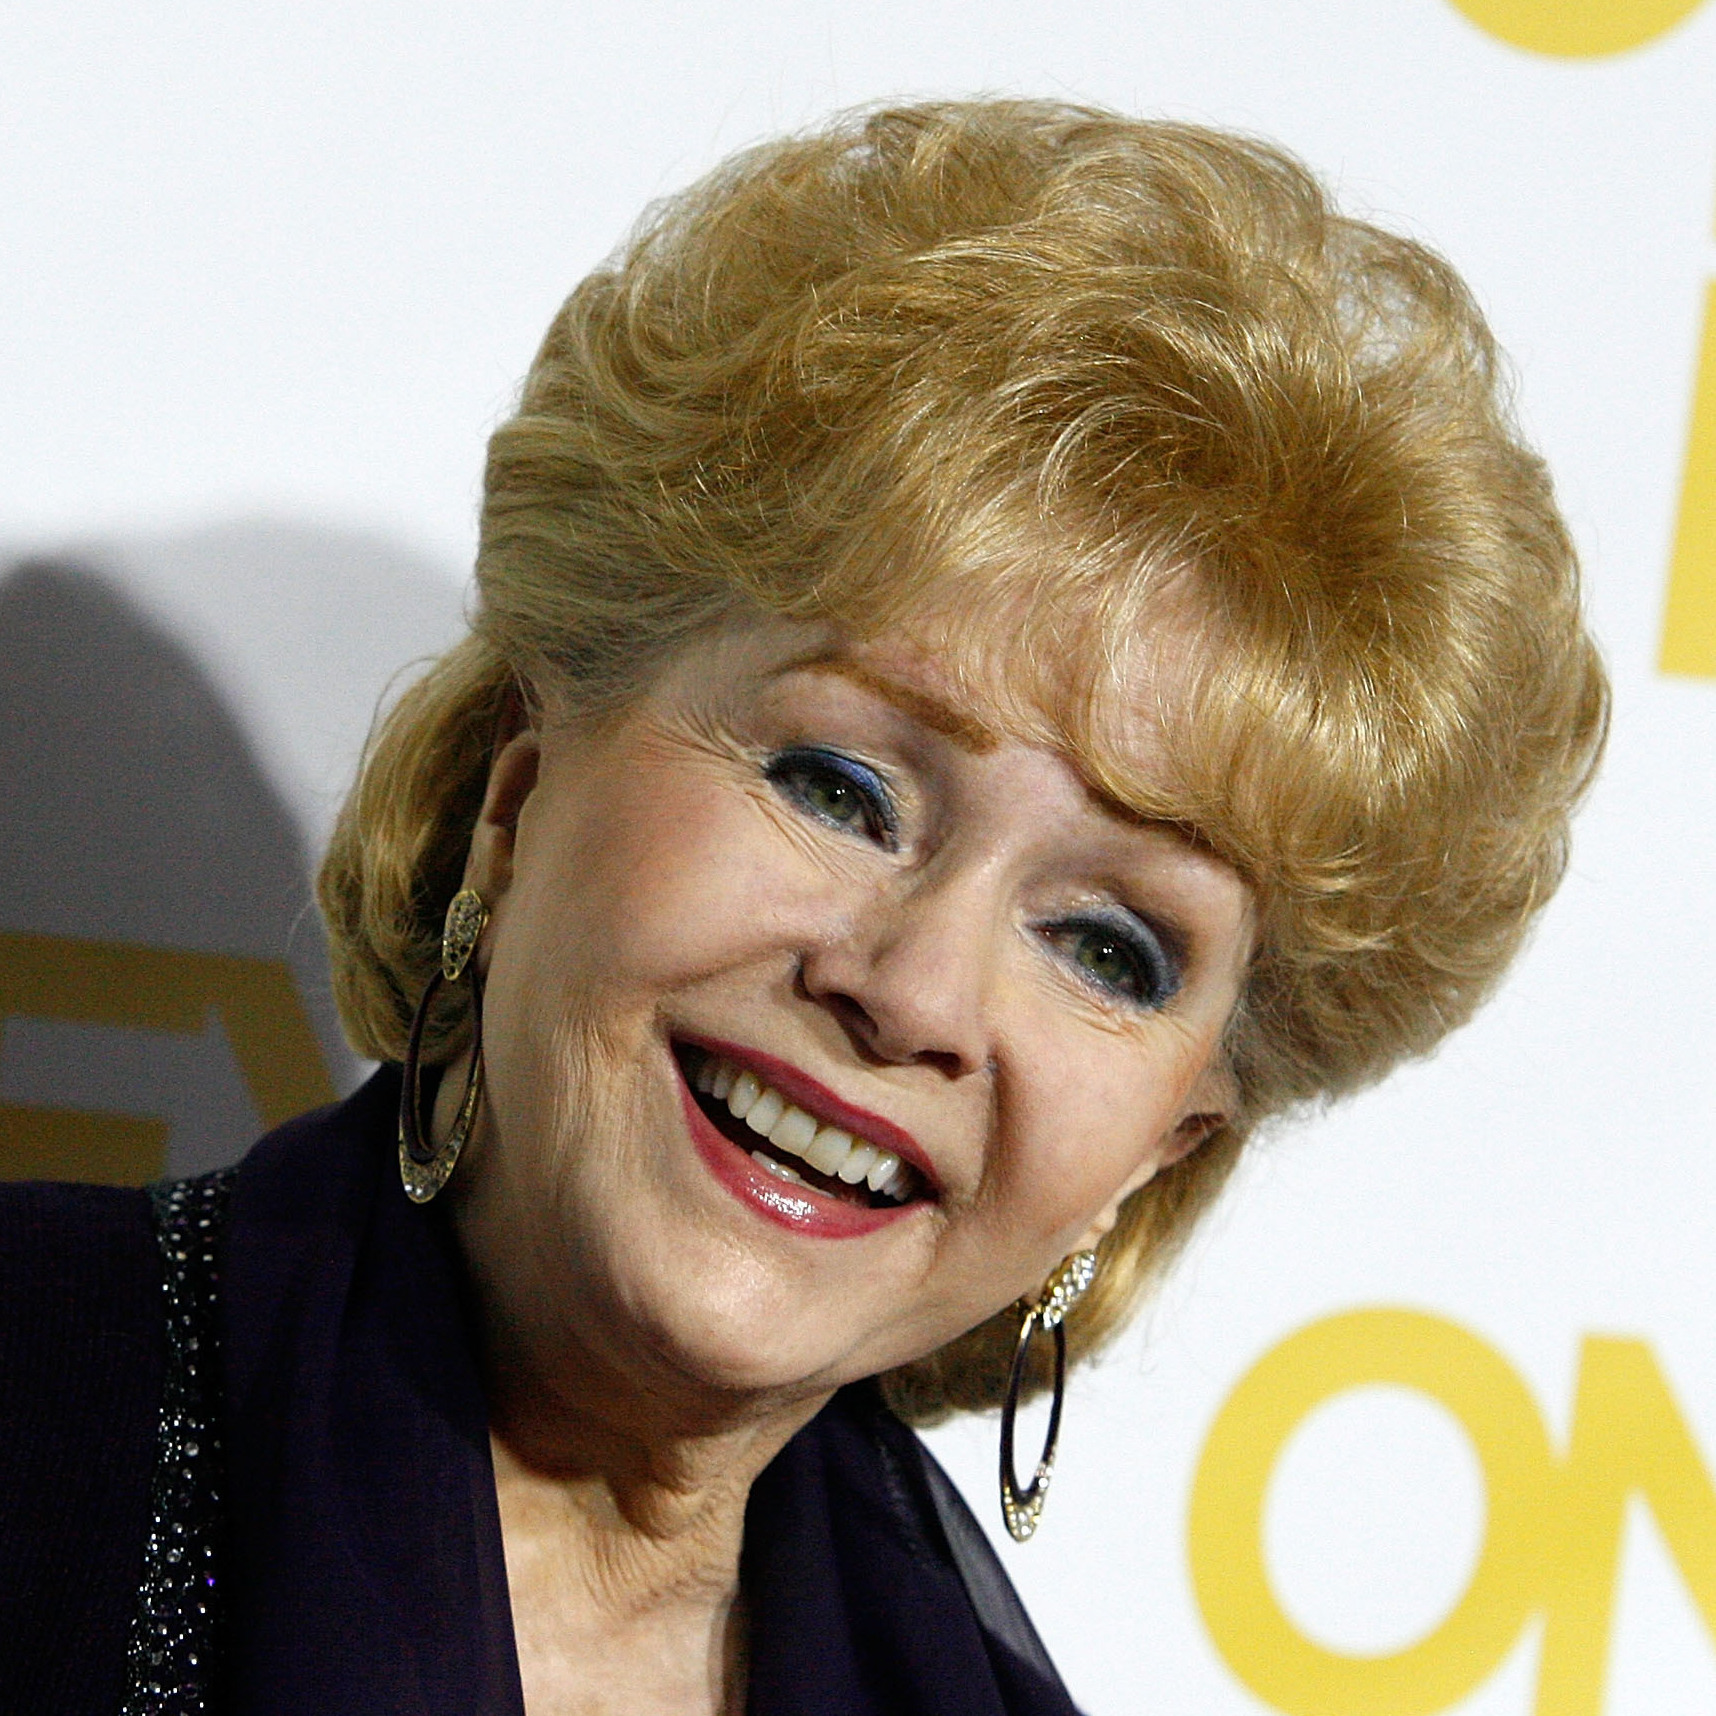 Debbie Reynolds, shown here in 2012, starred in Singin' In The Rain and The Unsinkable Molly Brown.